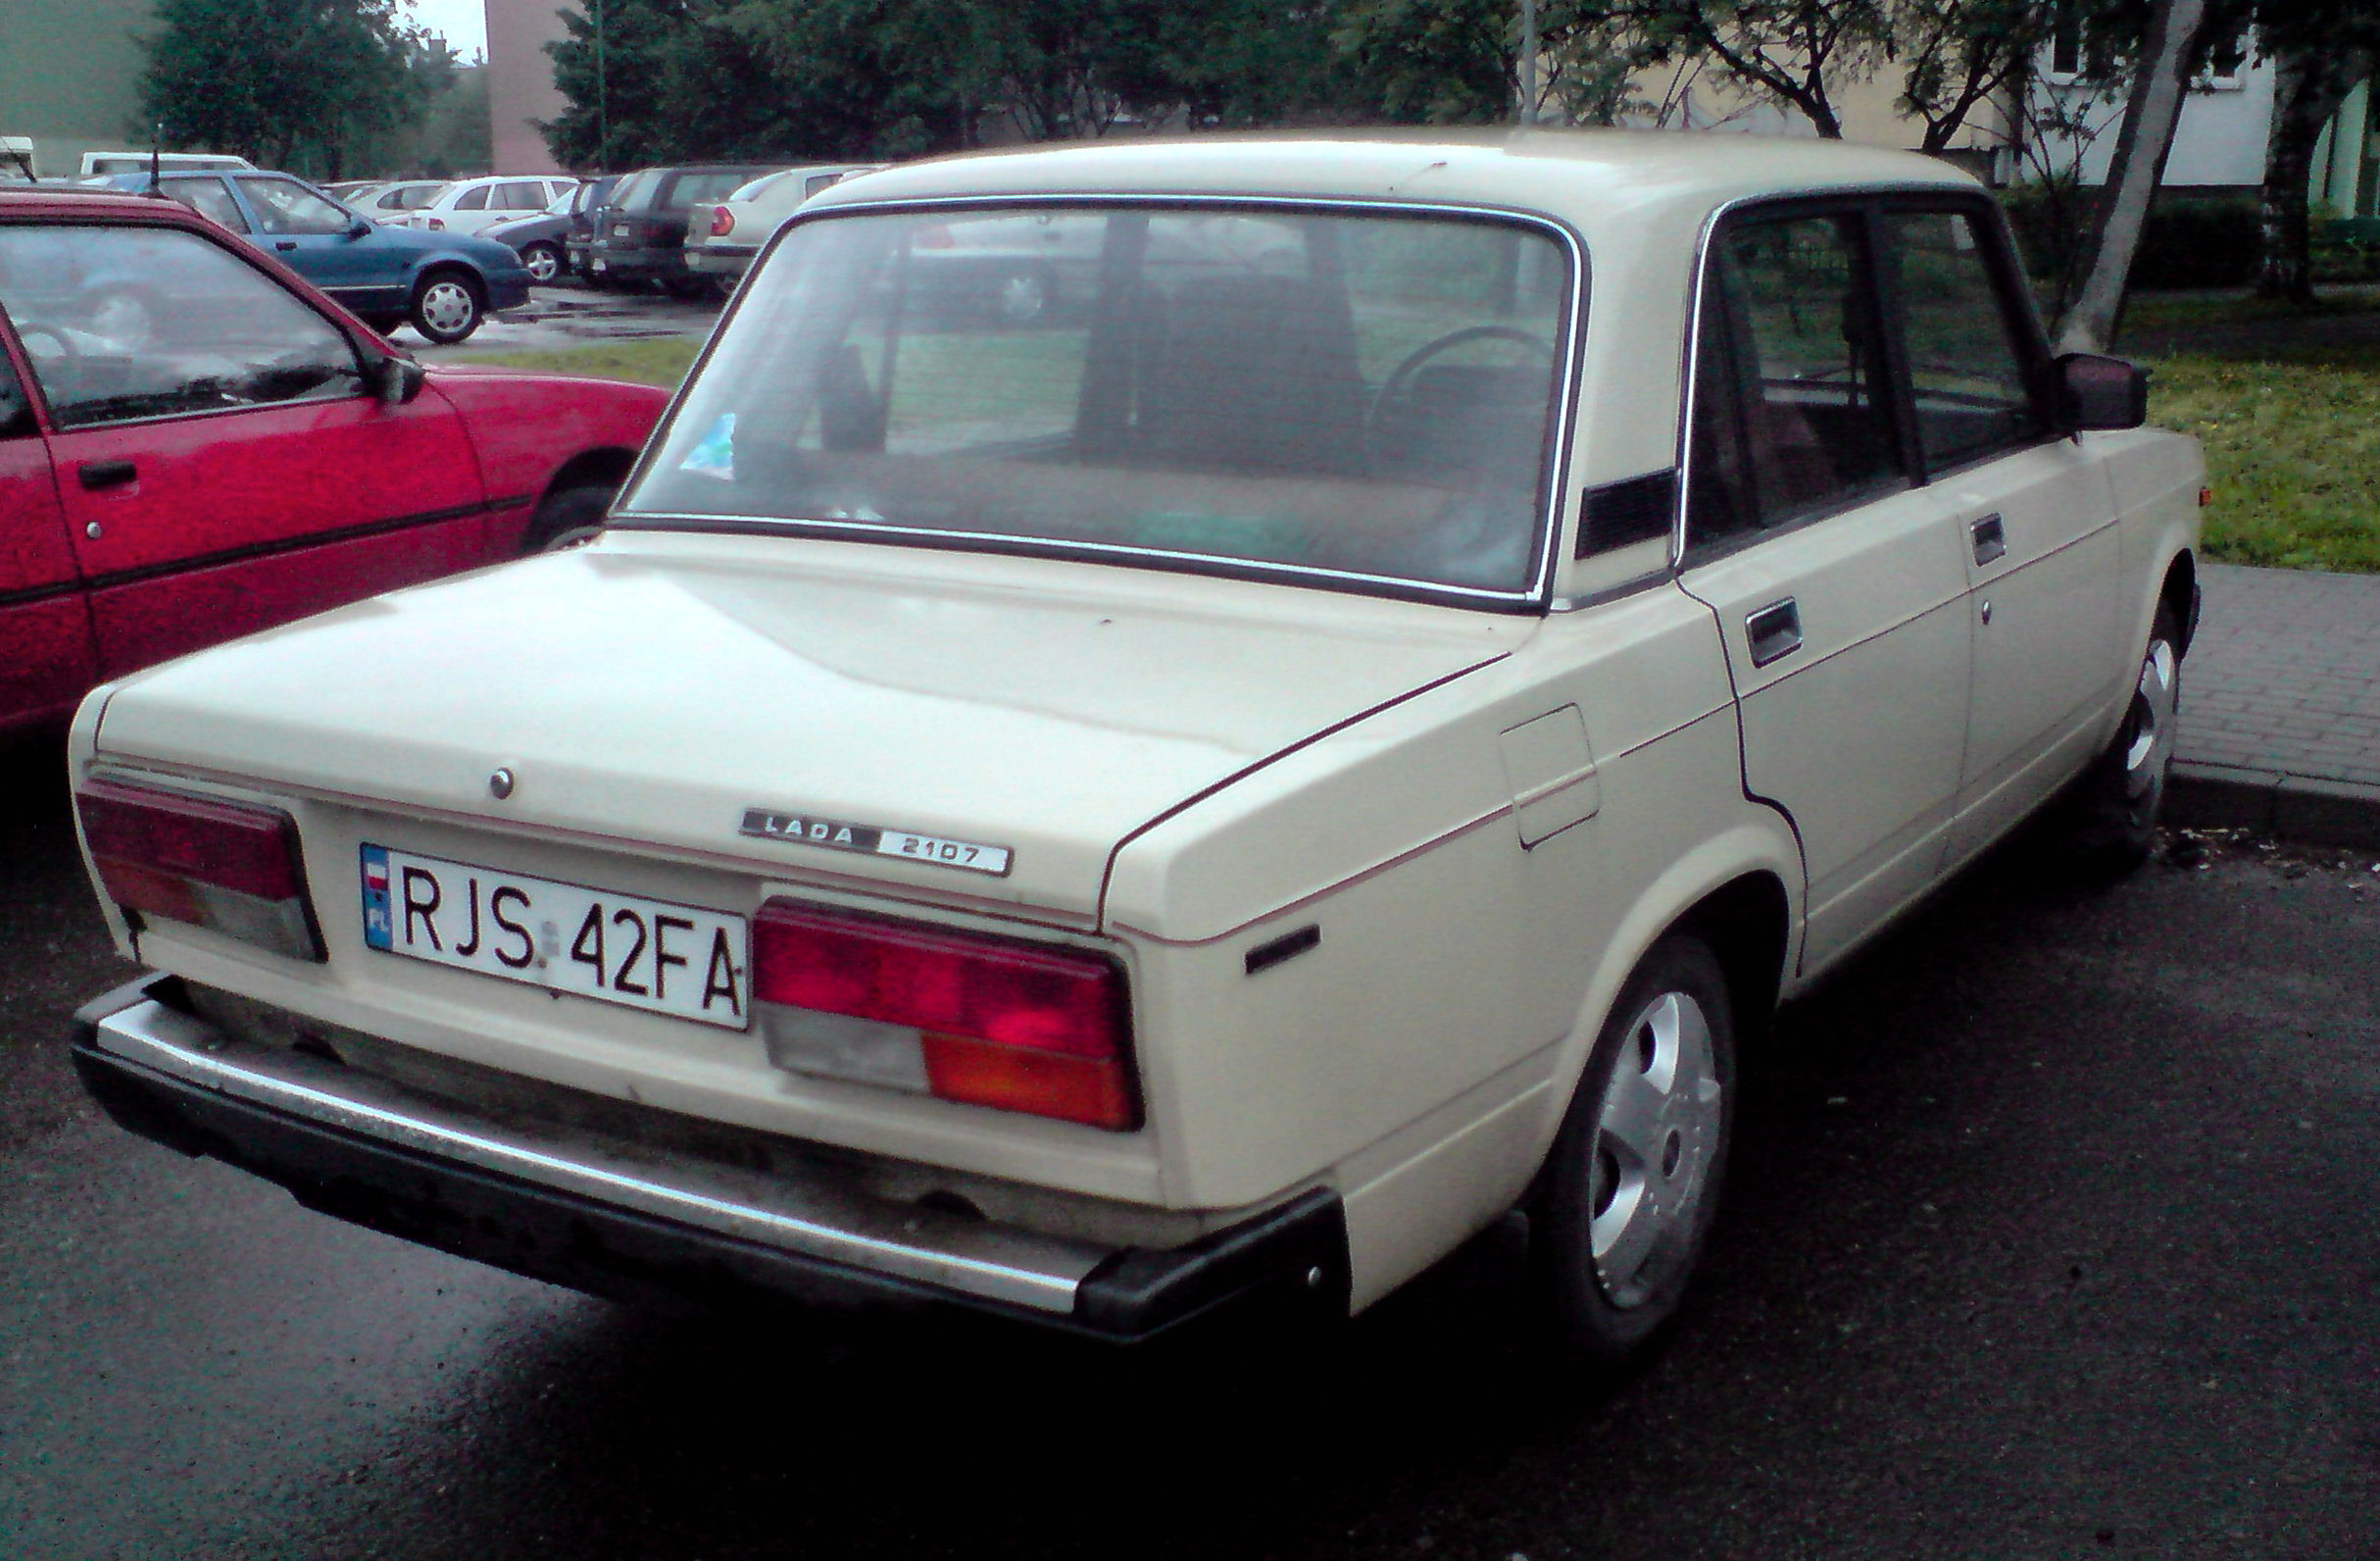 http://upload.wikimedia.org/wikipedia/commons/b/b6/Lada_2107_jaslo.jpg